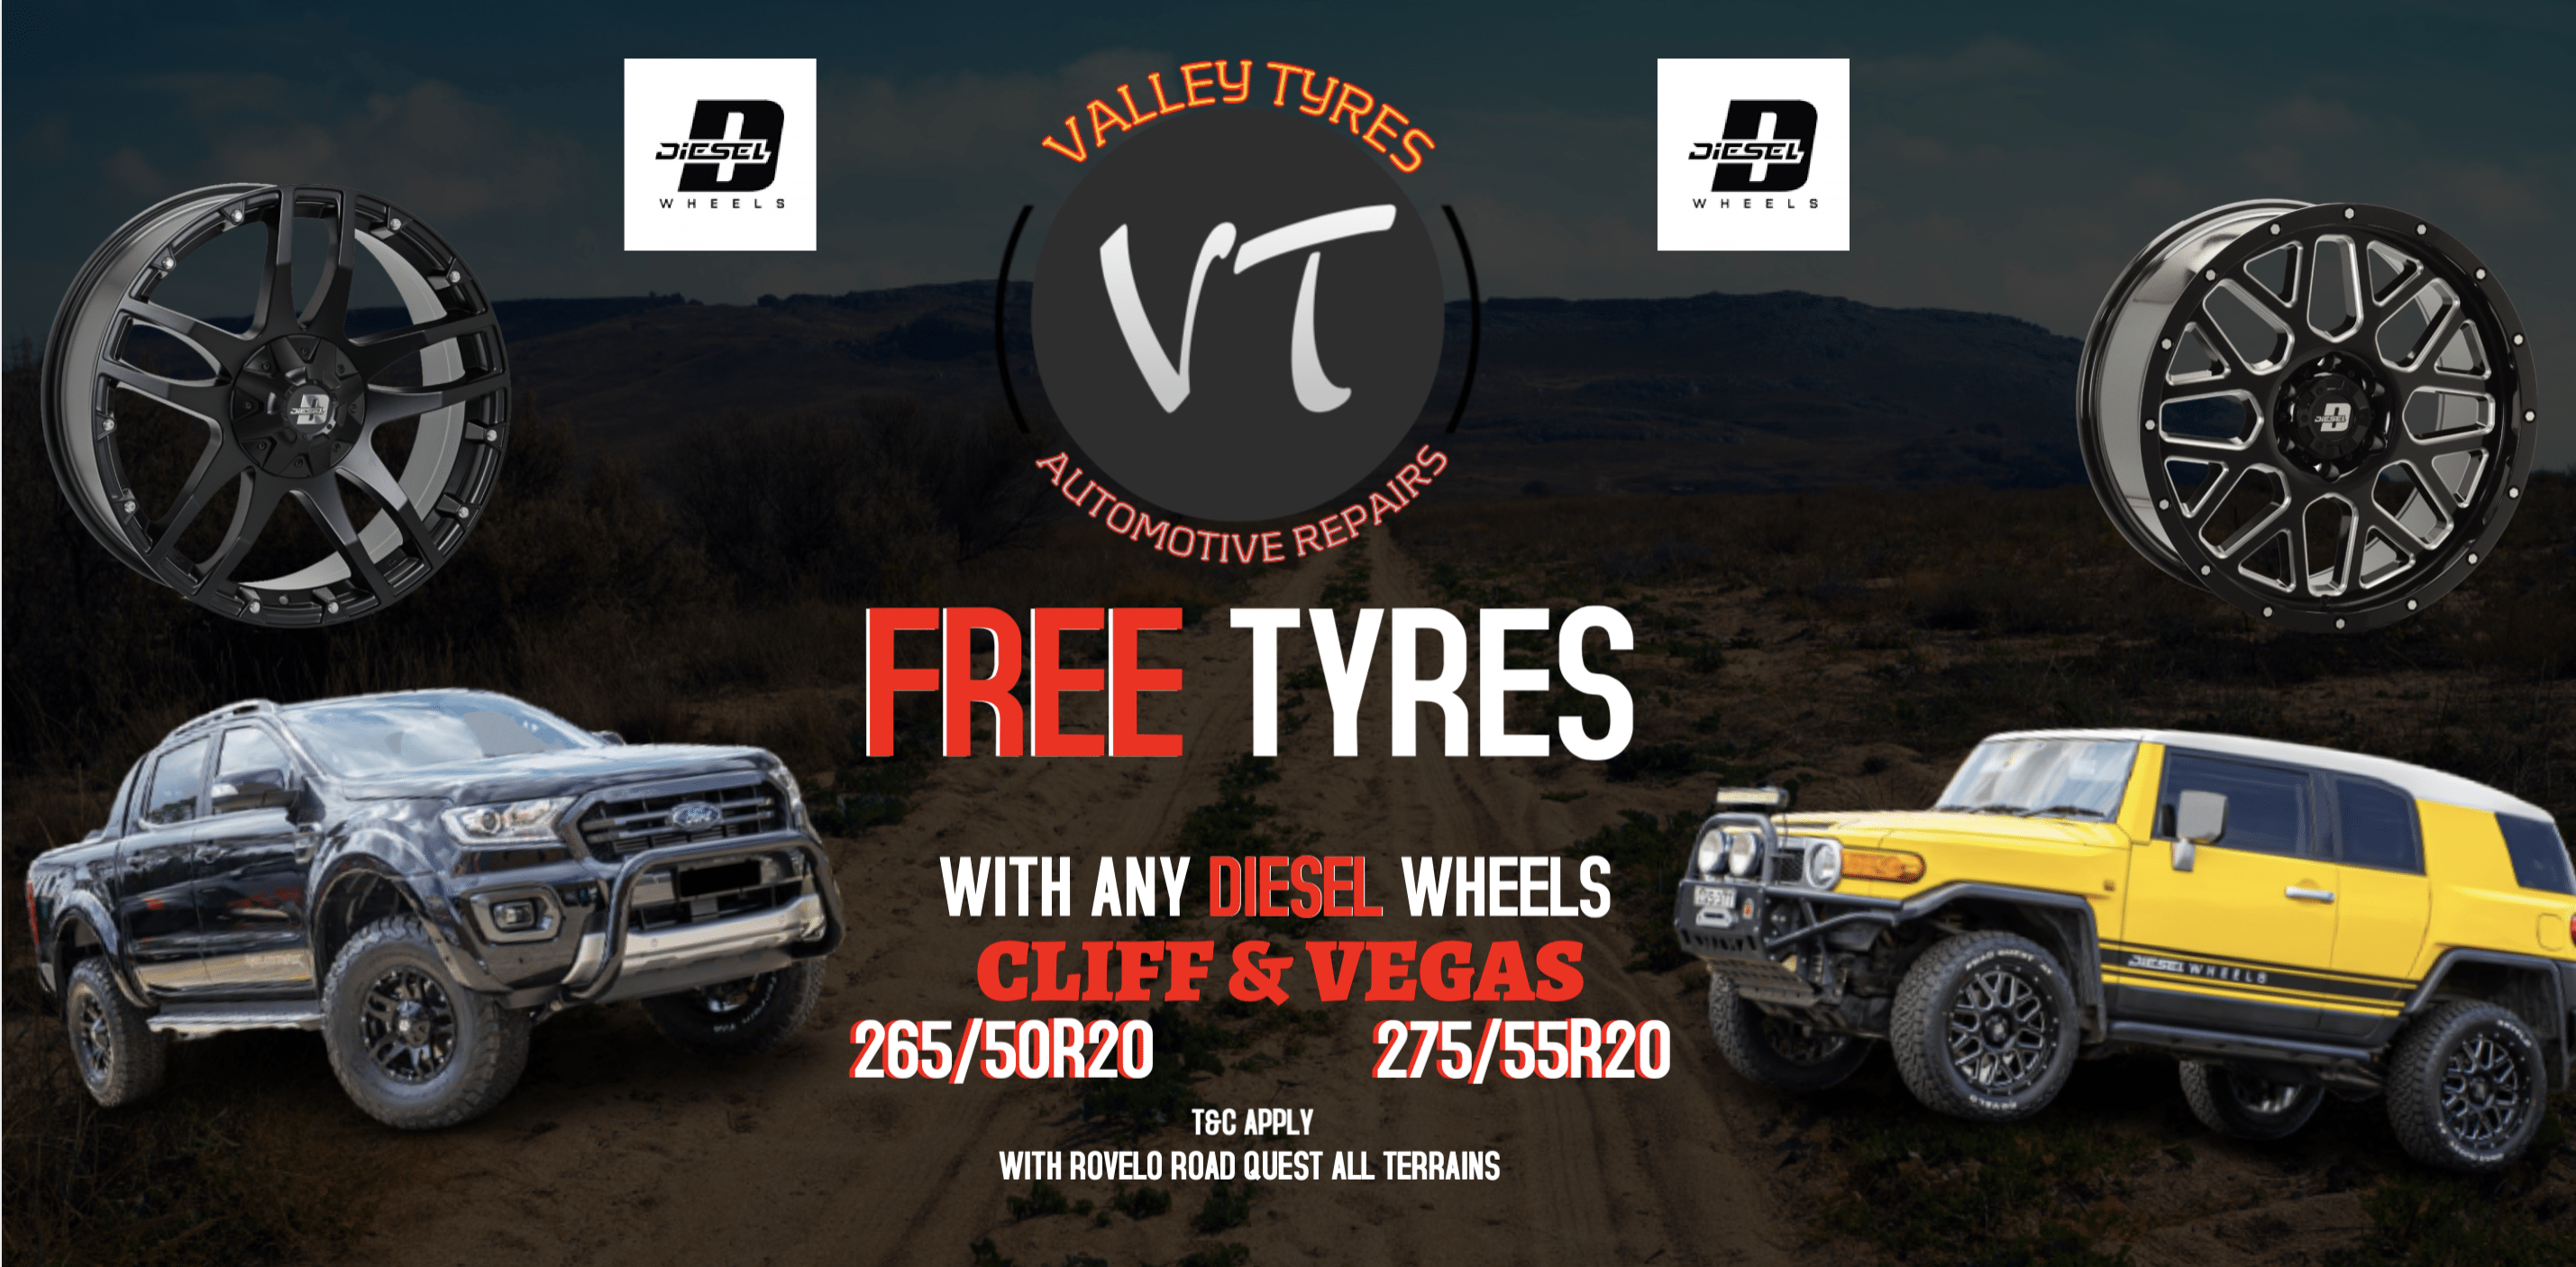 Valley Tyres & Wheels Sale - Off-road vehicle